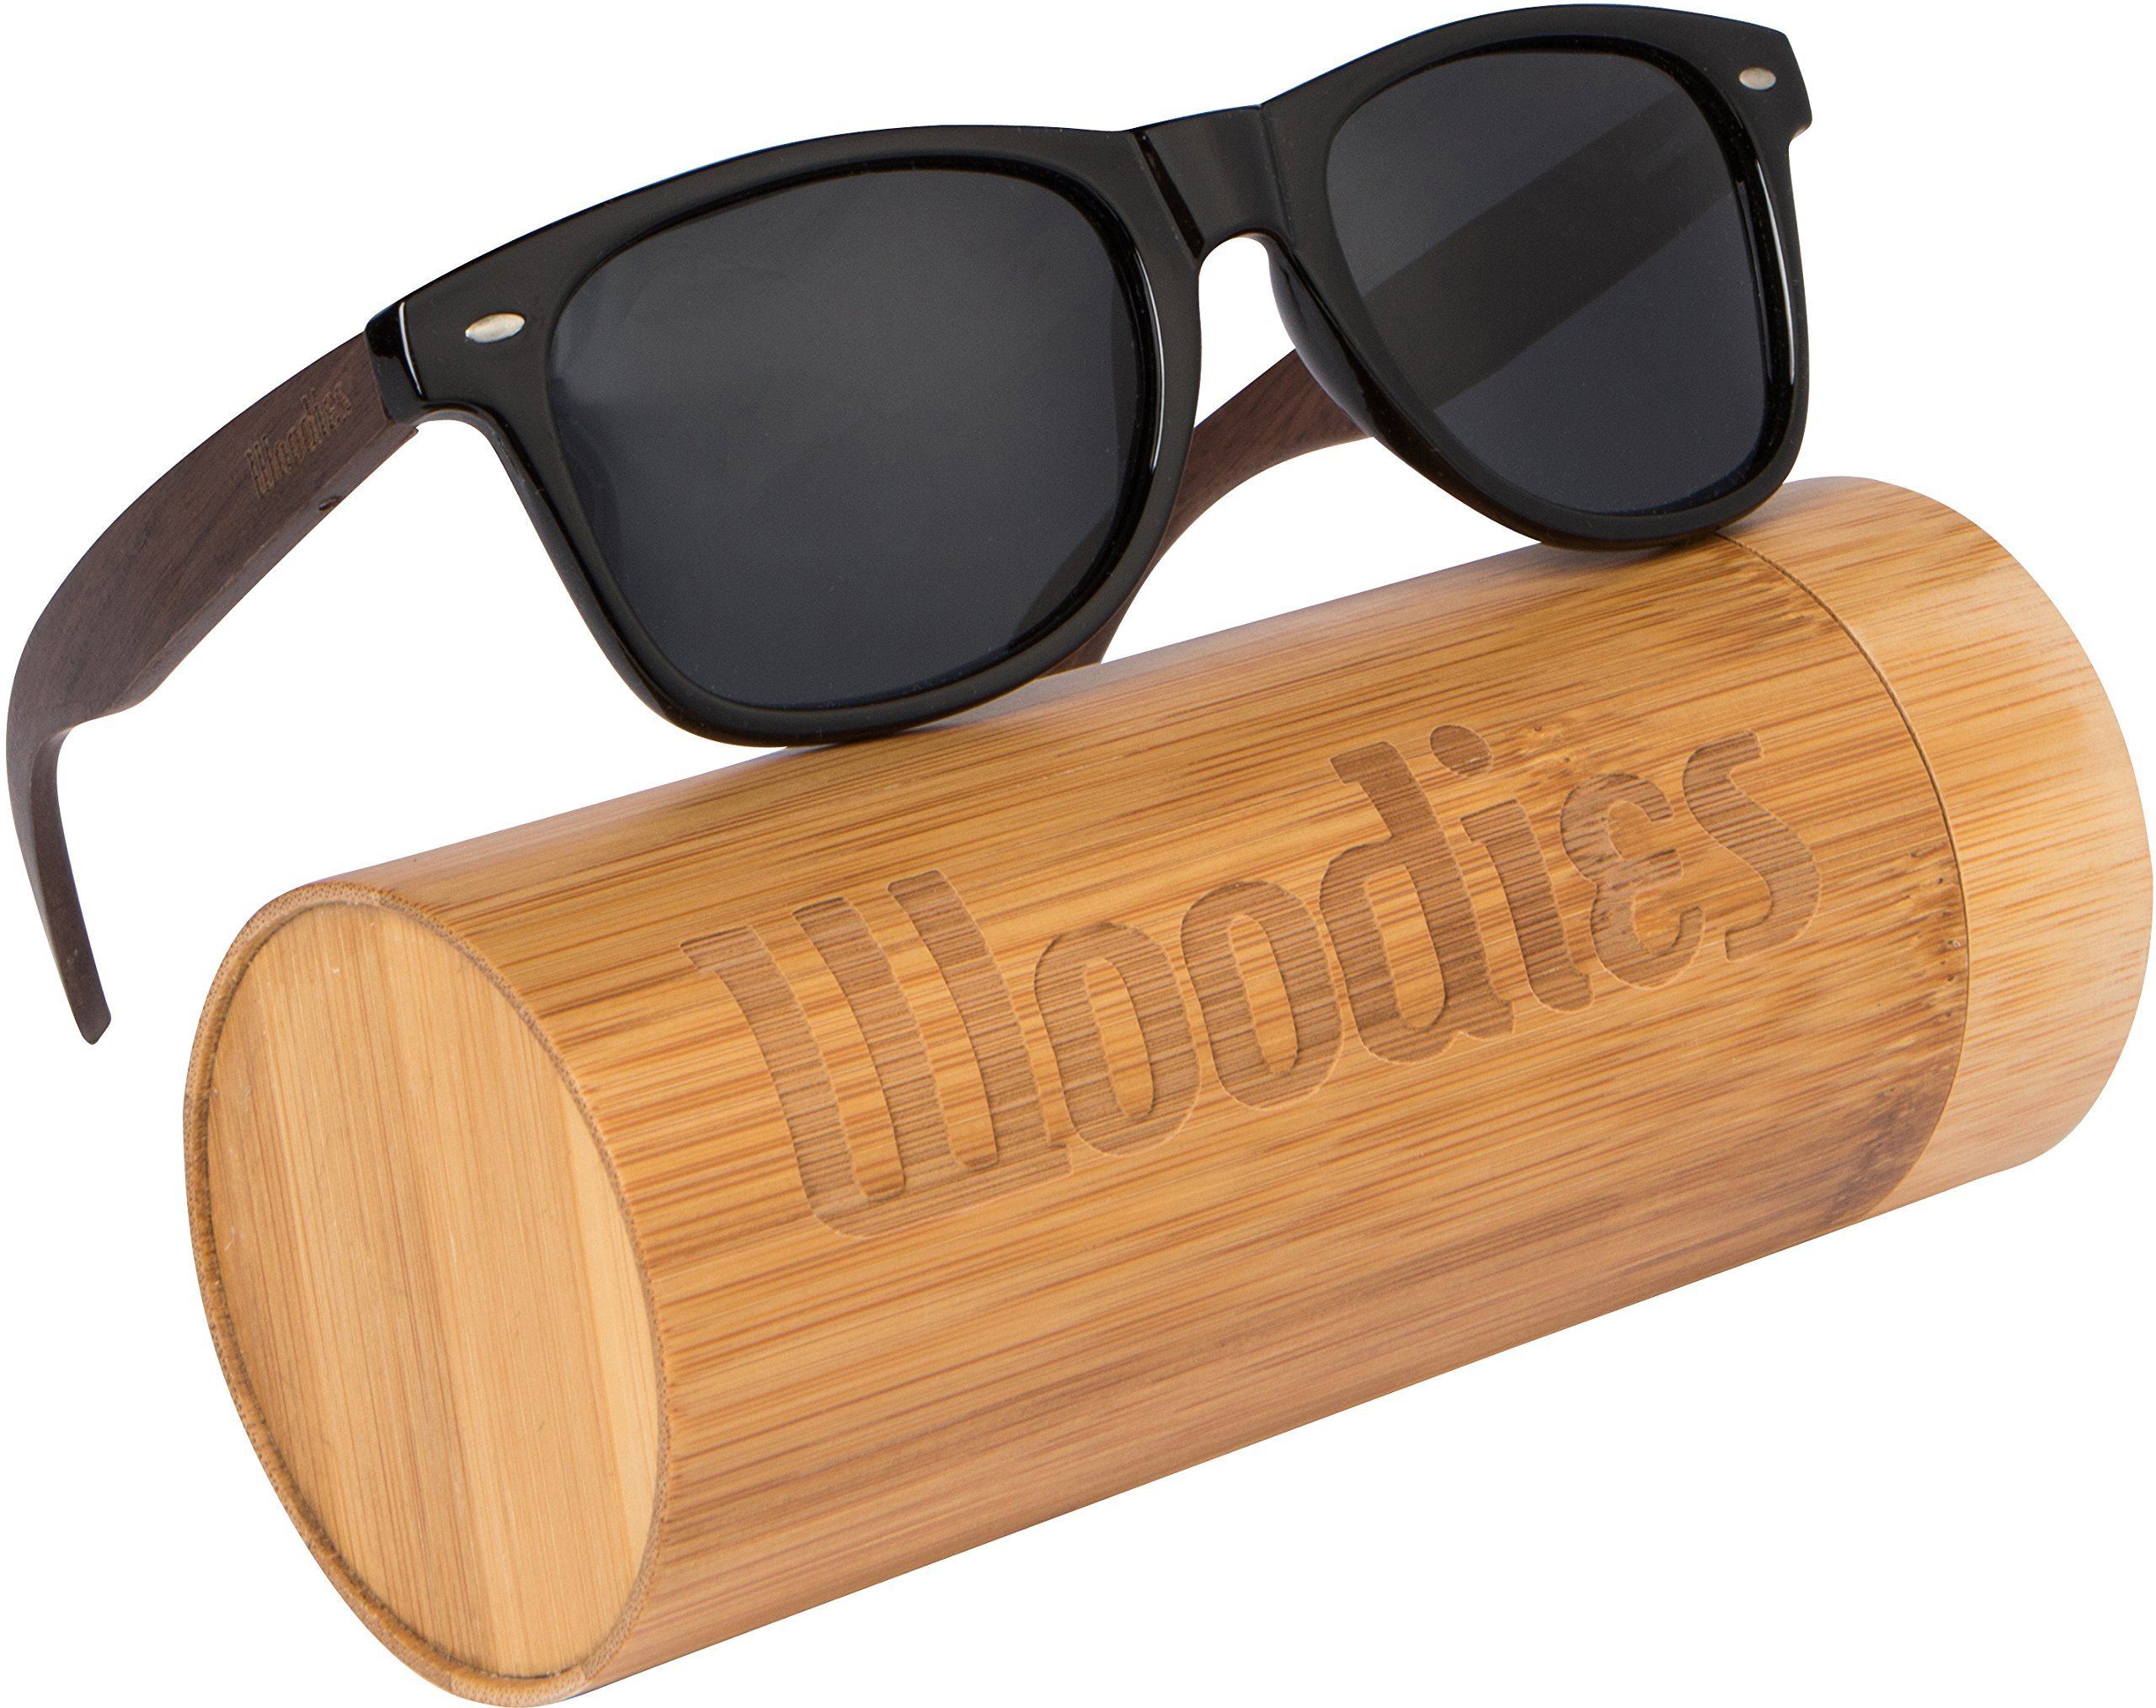 WOODIES Walnut Wood Wayfarer Sunglasses with Polarized Lens in Bamboo Tube Packaging by Woodies